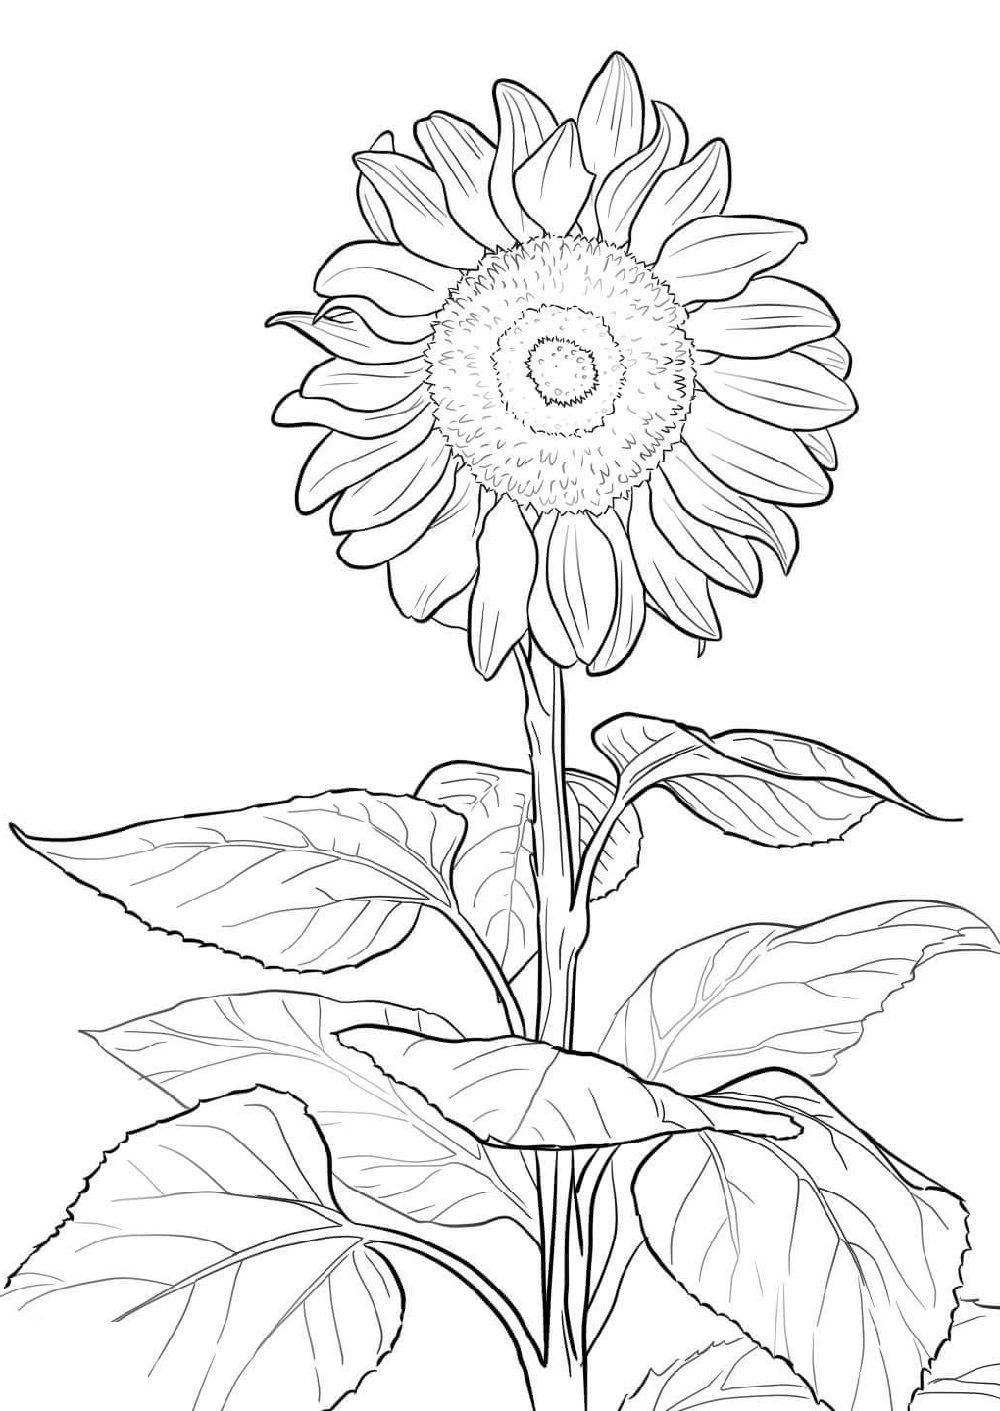 Sunflower Coloring Page For Preschoolers Sunflower Coloring